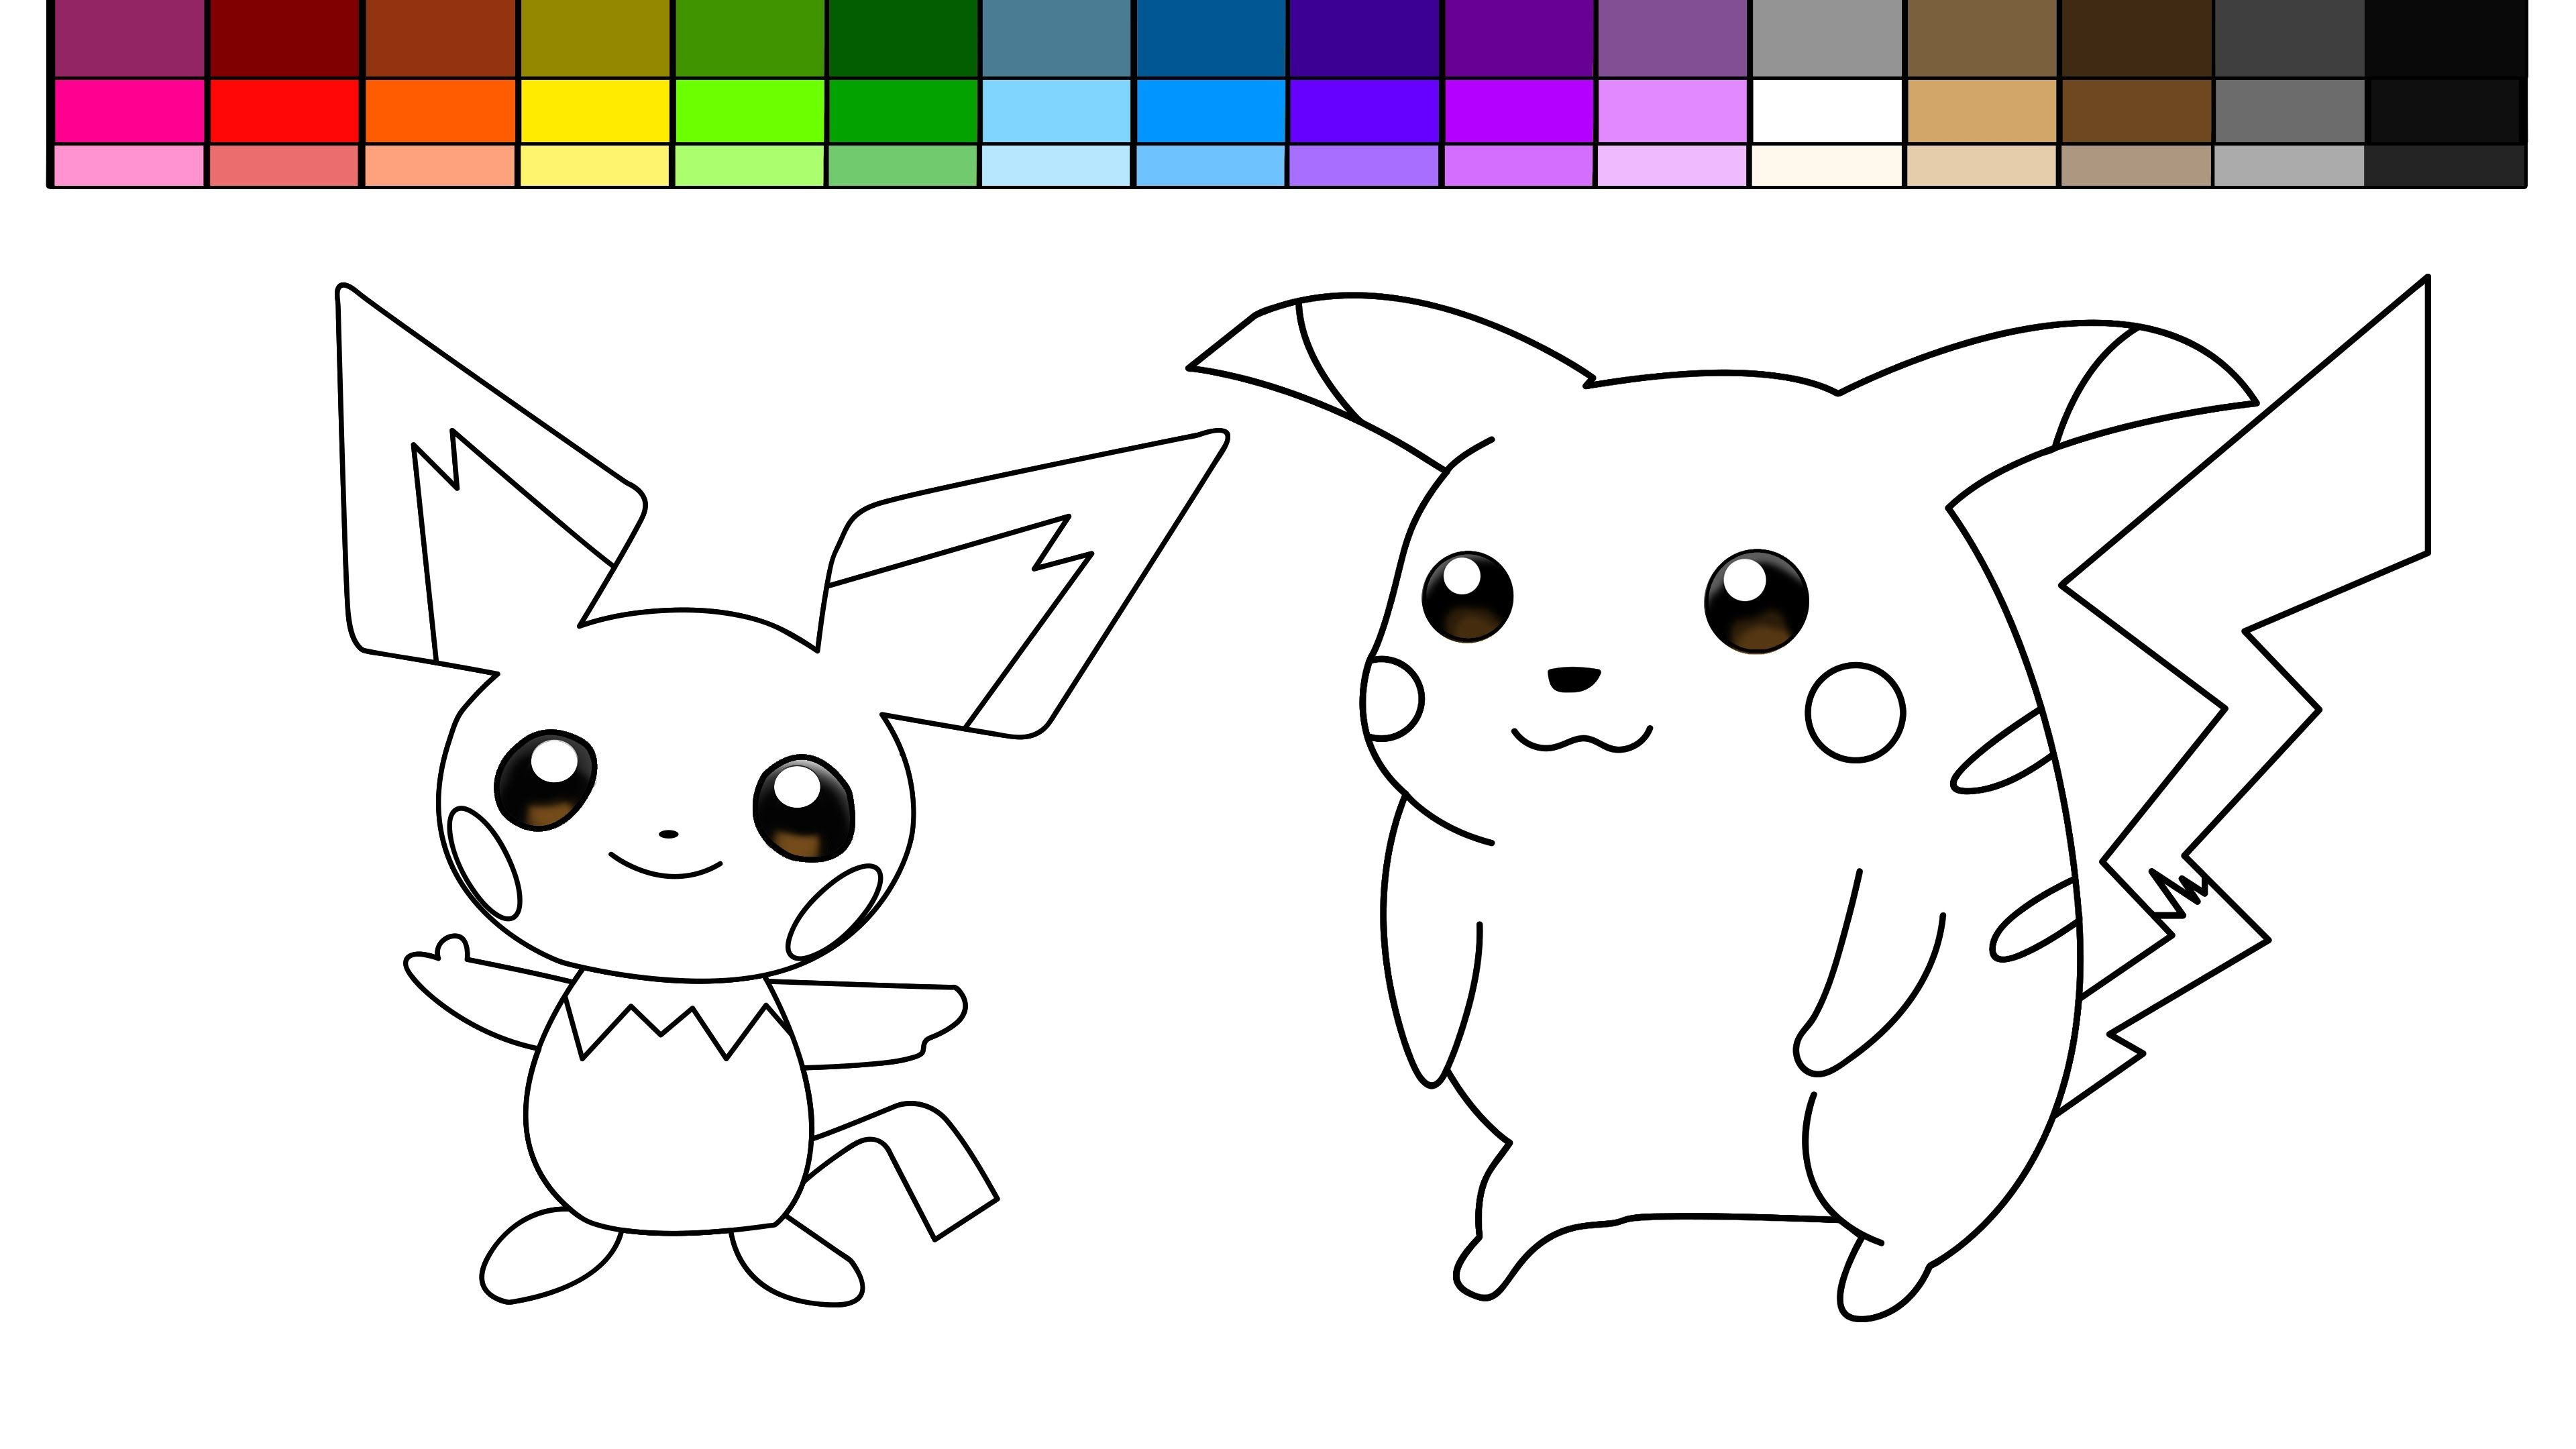 Pikachu and Pichu Coloring Pages to Print   Pokemon ...